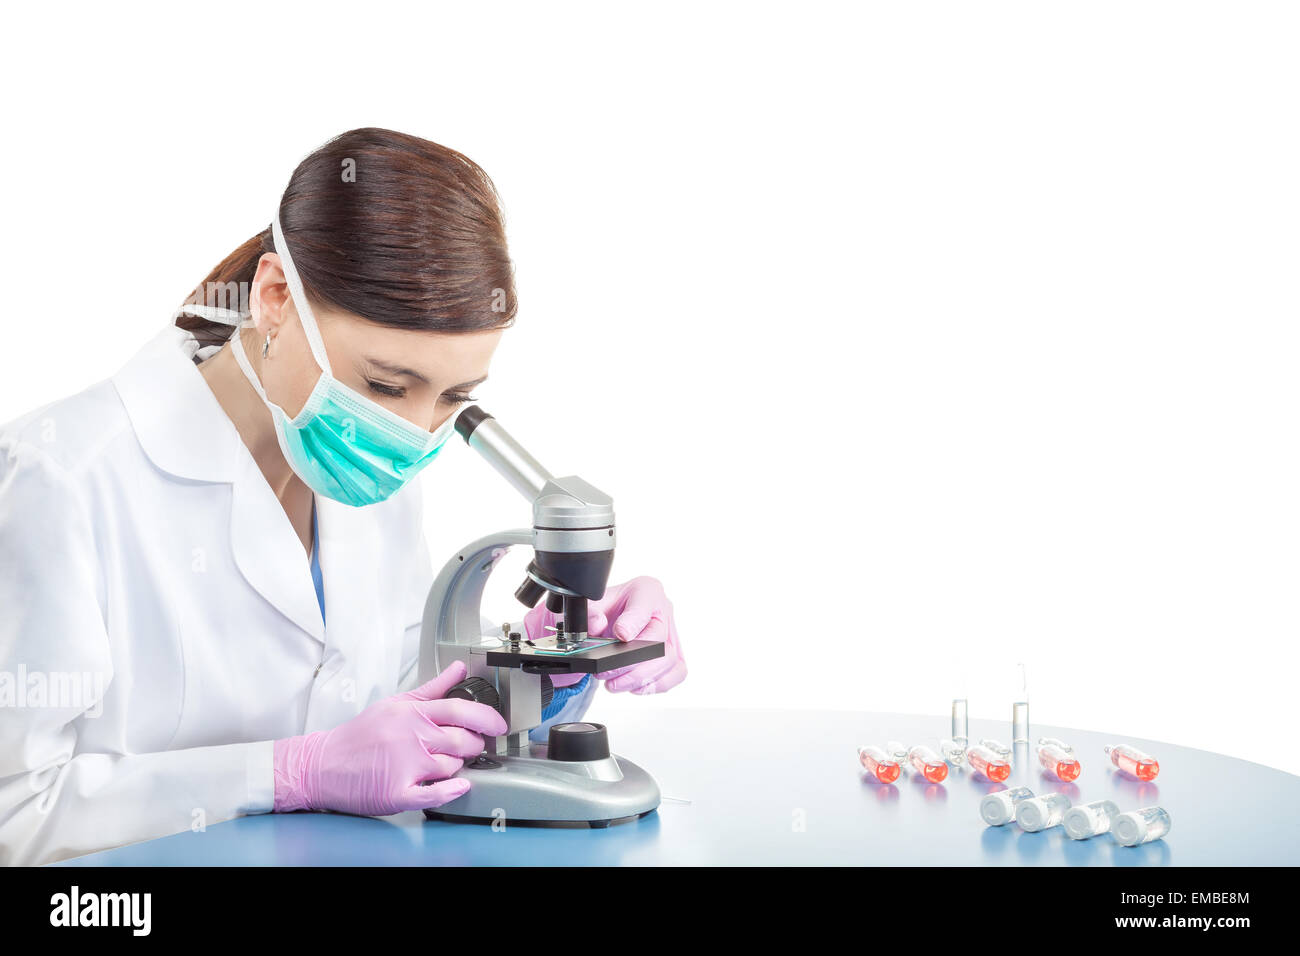 Female doctor or scientific researcher in mask using microscope in a laboratory, space for text. Stock Photo